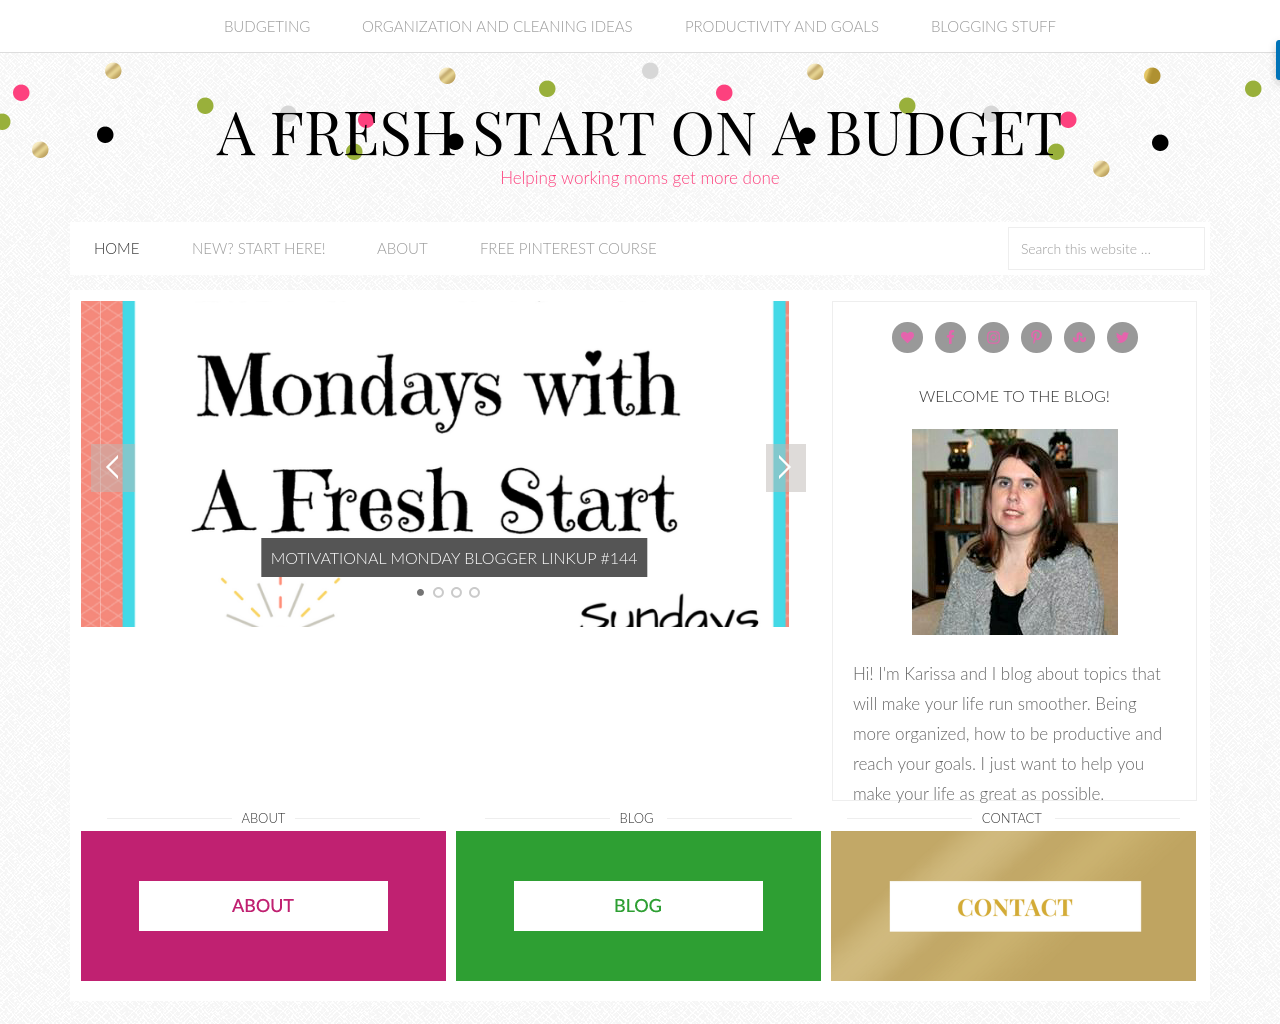 A-Fresh-Start-on-a-Budget-Advertising-Reviews-Pricing